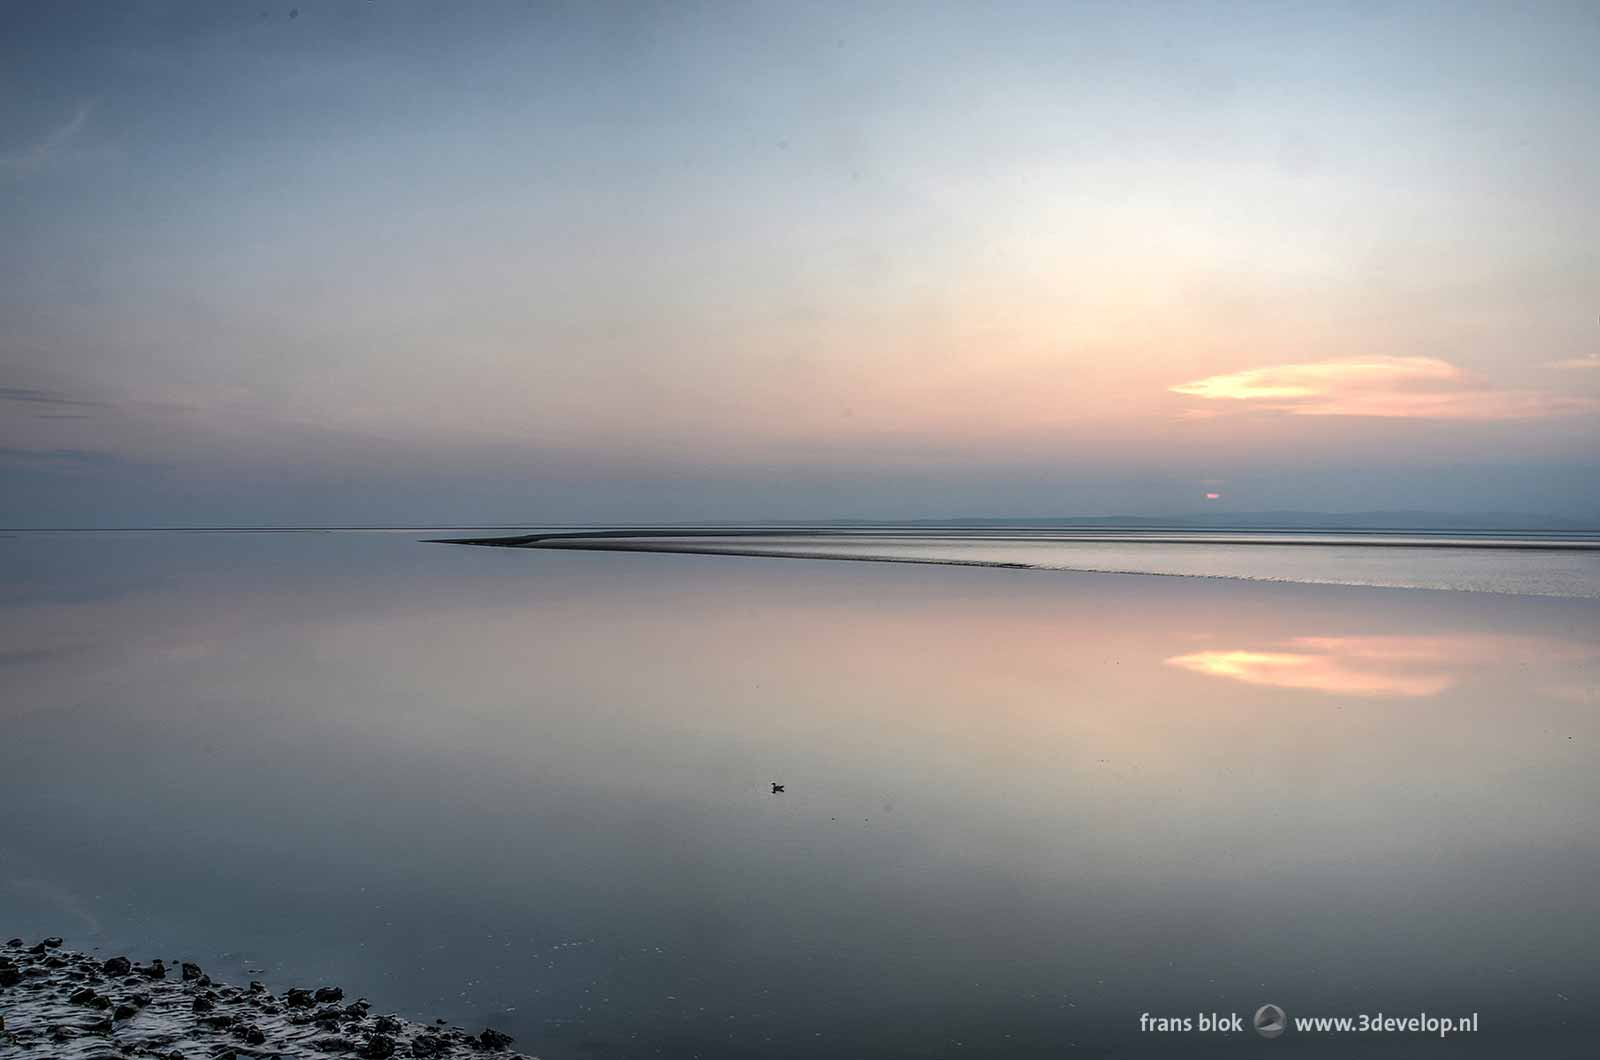 Sunset above the Bay of morecambe in Lancashire, England, with a black mudflat and an extremely smooth sea